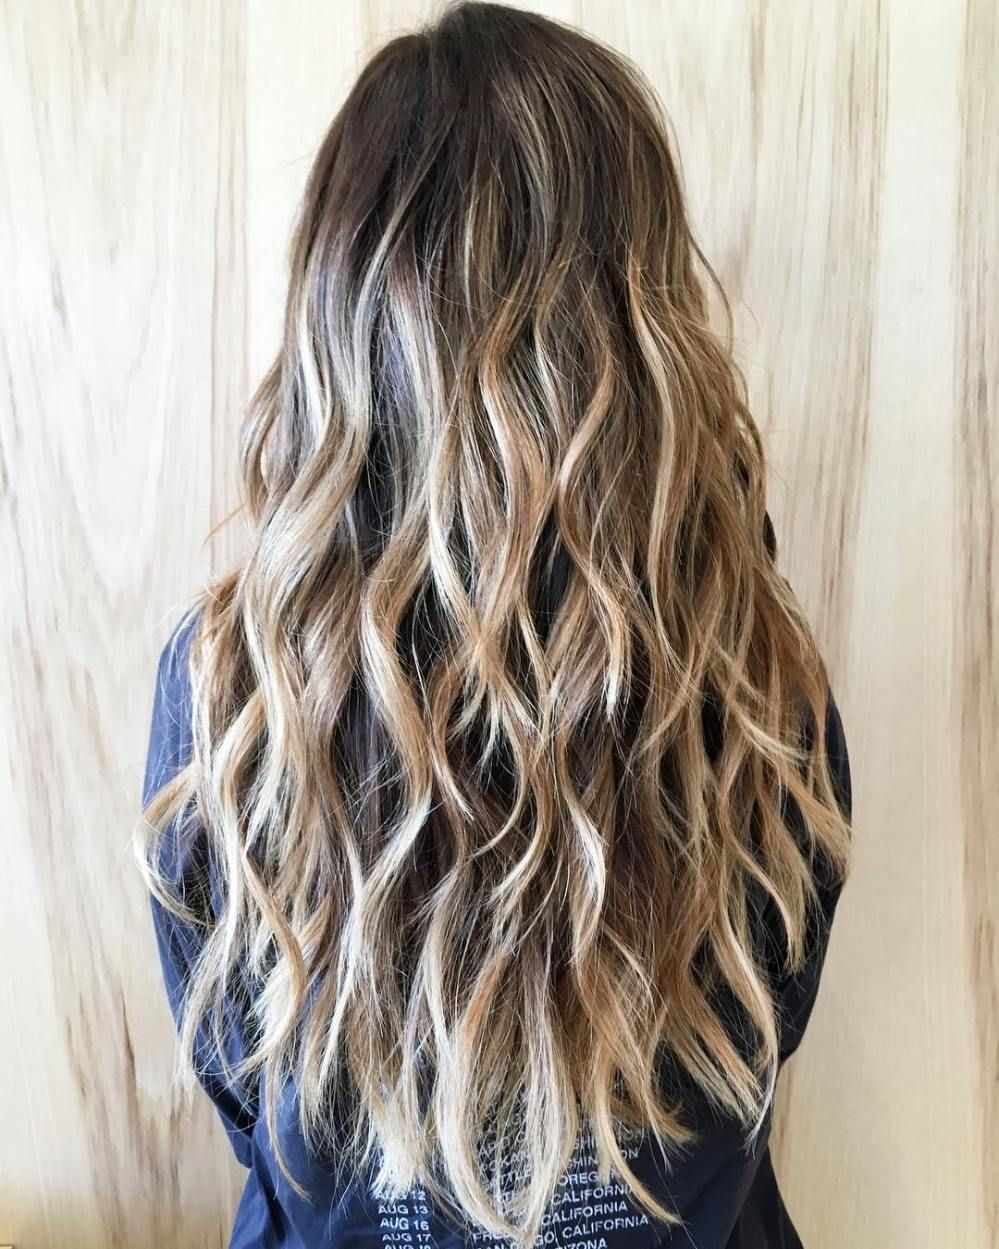 Extra Long Wavy Hairstyle With Highlighted Layers I Should Ask My Stylist About This One Thick Wavy Hair Long Hair Styles Long Wavy Hair